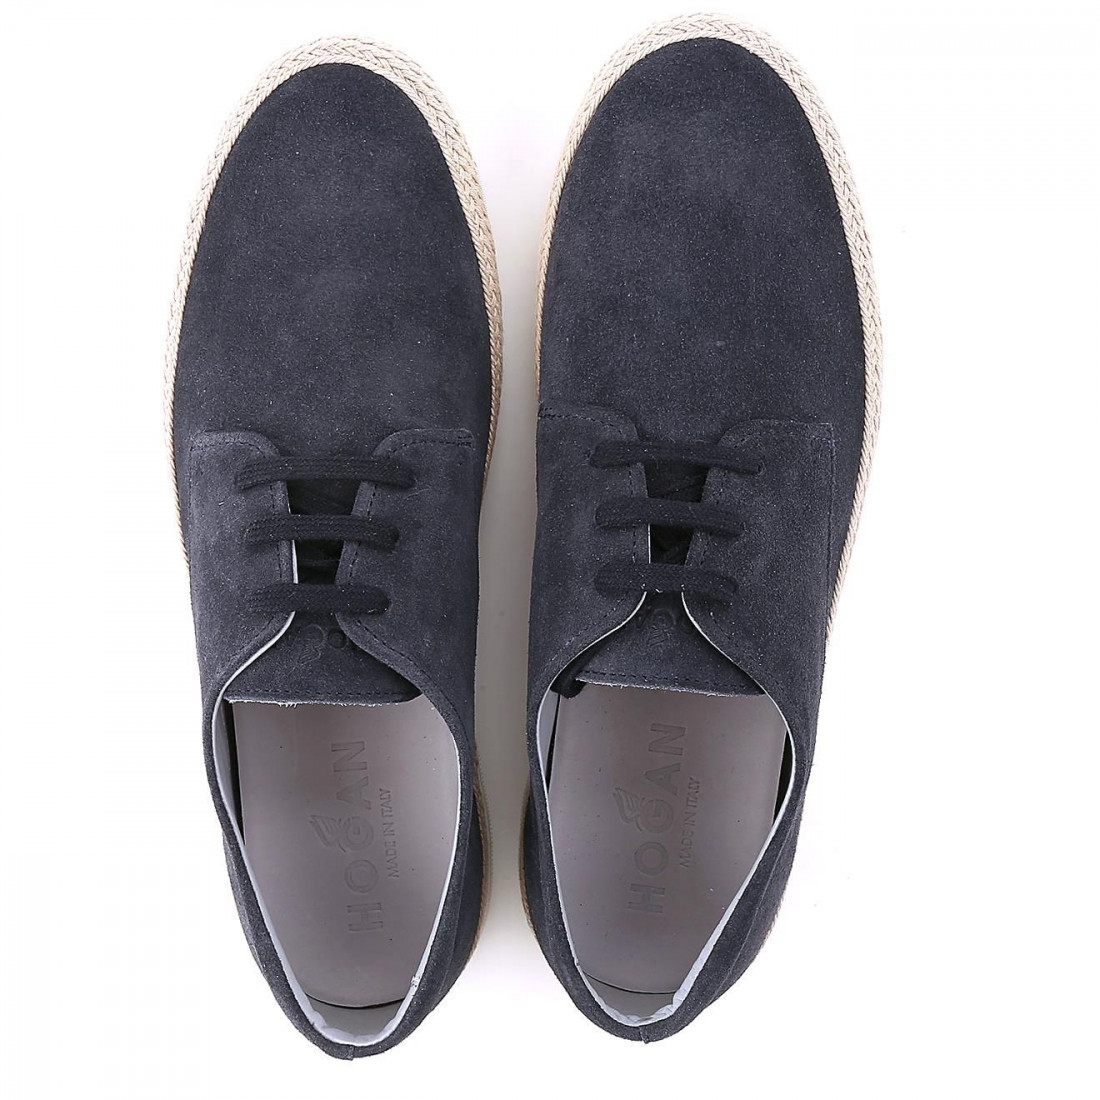 H358 derby shoes in blue suede with cord detailing